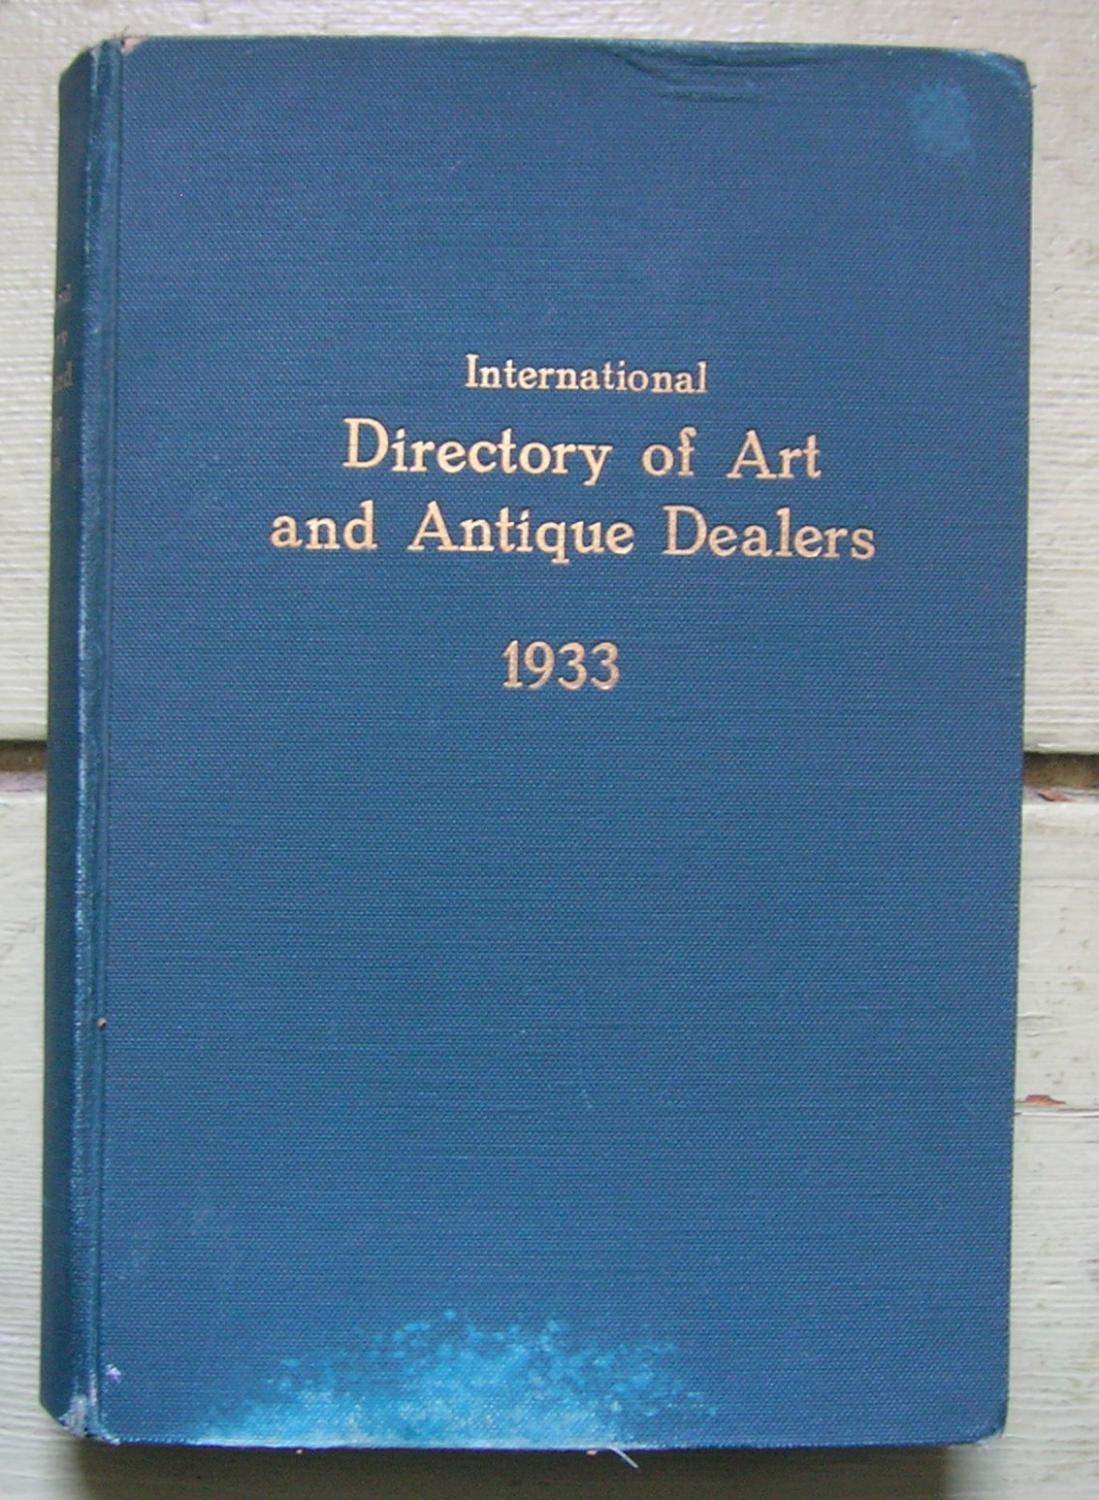 International Directory of Art and Antique